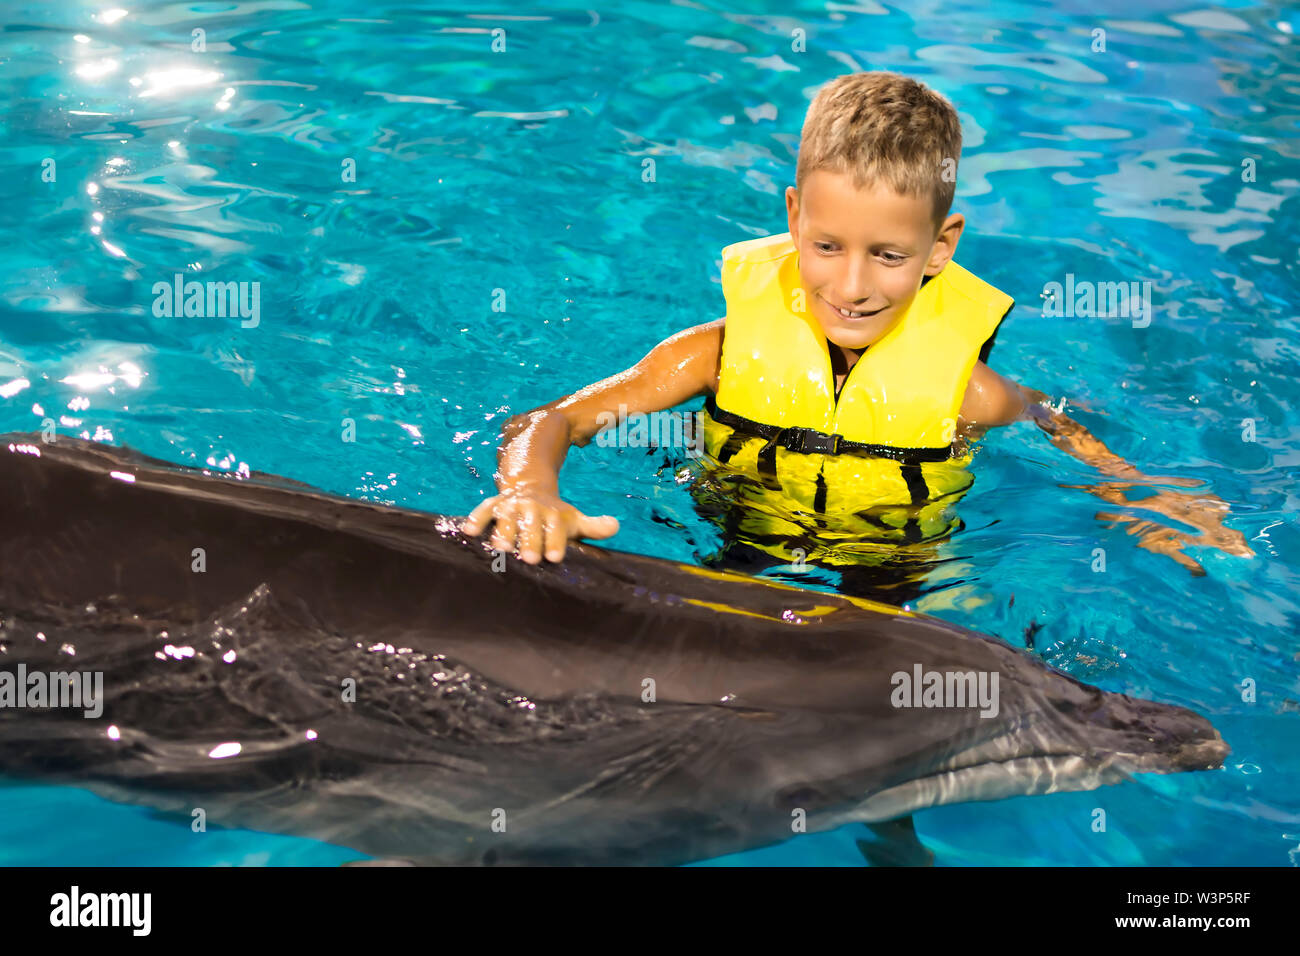 Happy Boy swimming with dolphins in the blue clear water Stock Photo